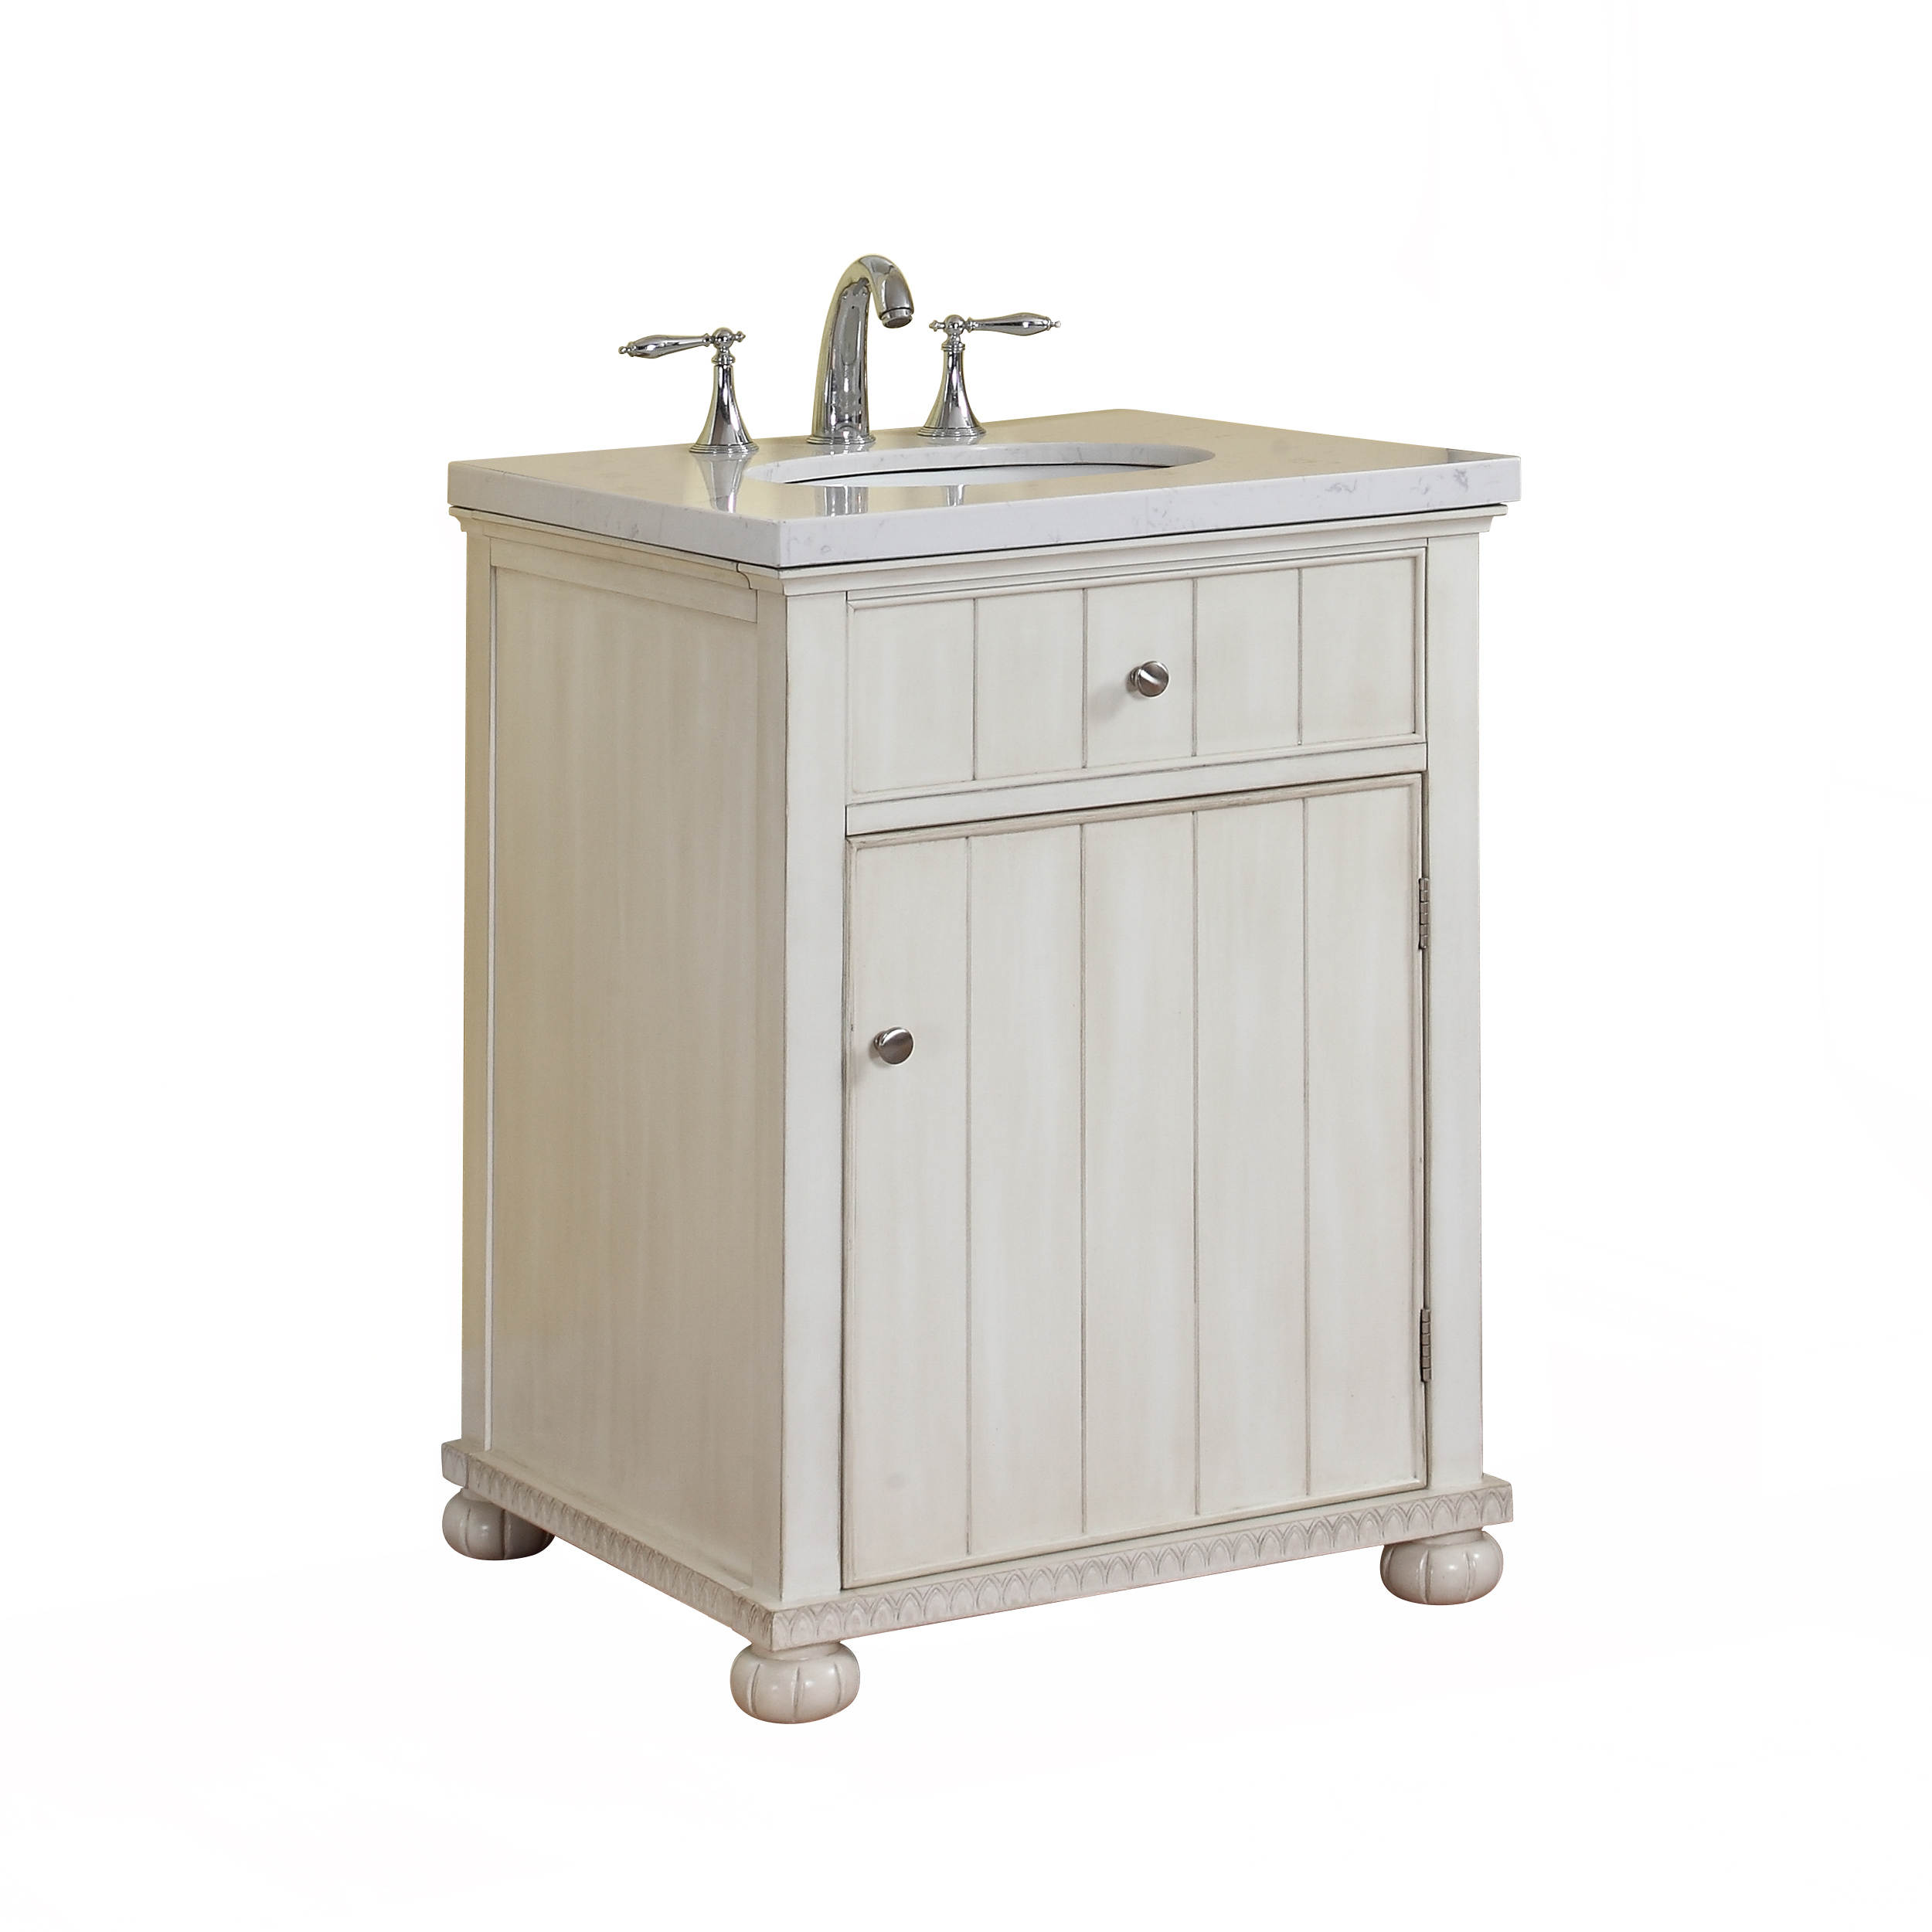 Crawford and burke waterford white hampton avenza quartz - Crawford and burke bathroom vanity ...